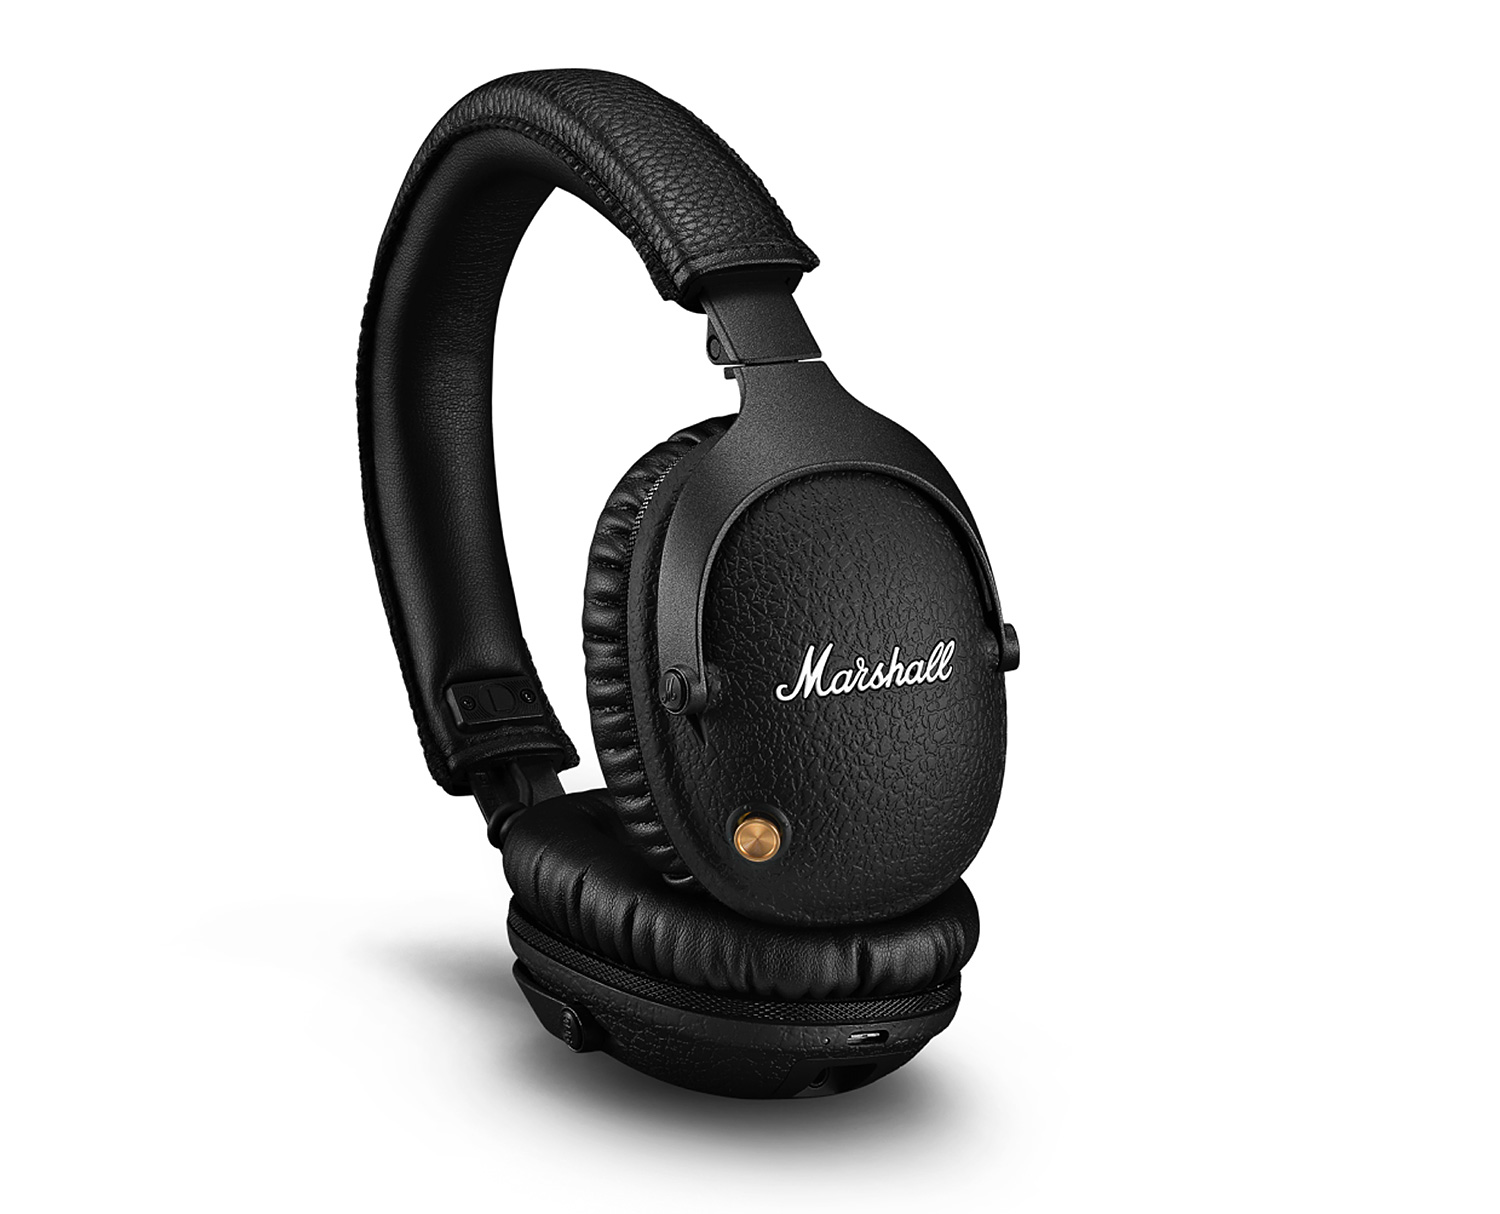 Marshall Releases Noise-Cancelling Monitor II ANC Headphones at werd.com